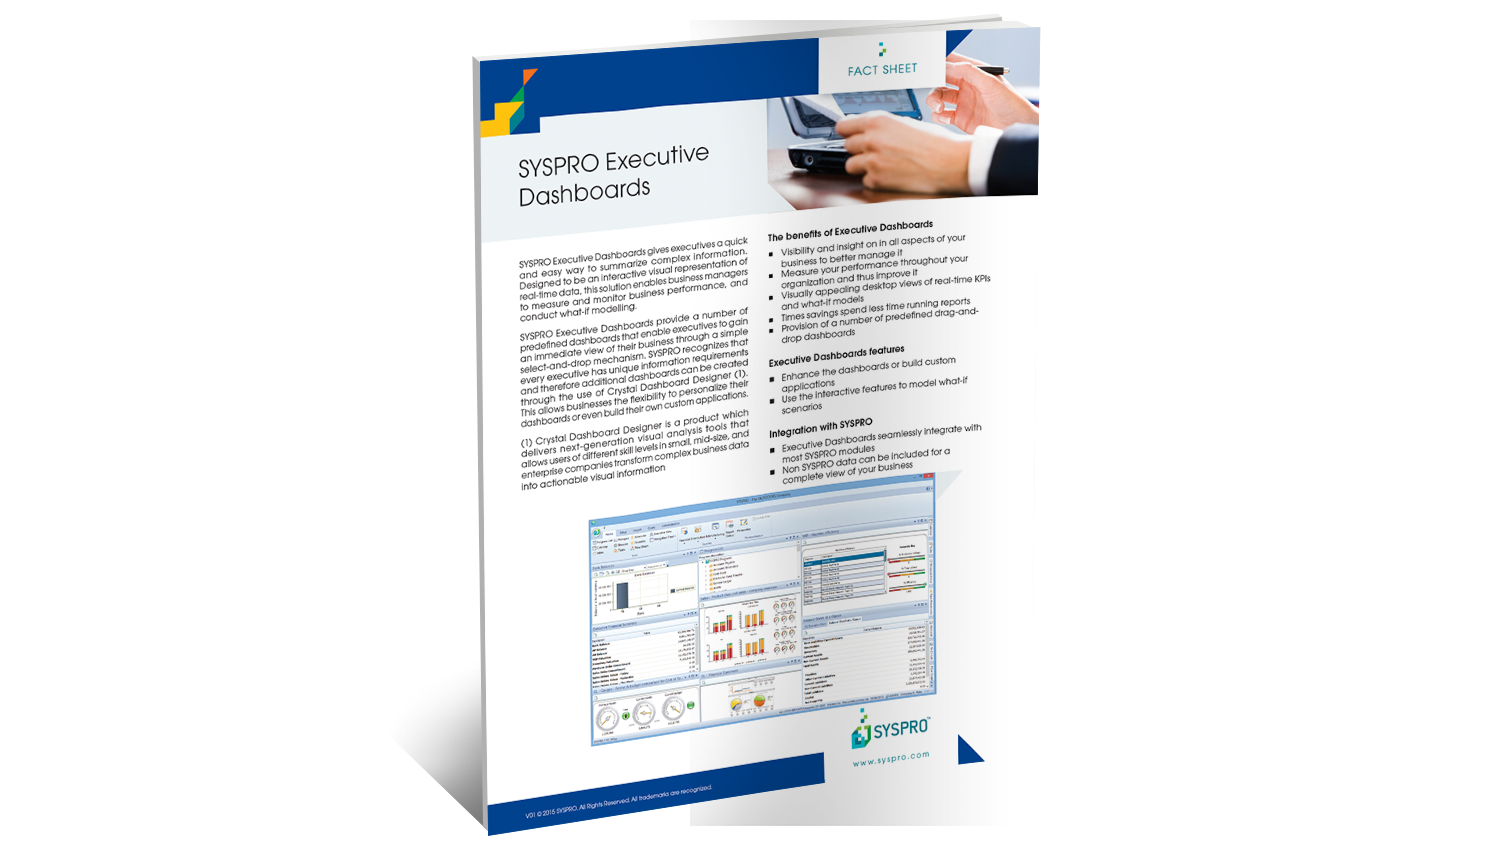 SYSPRO Executive Dashboards Brochure